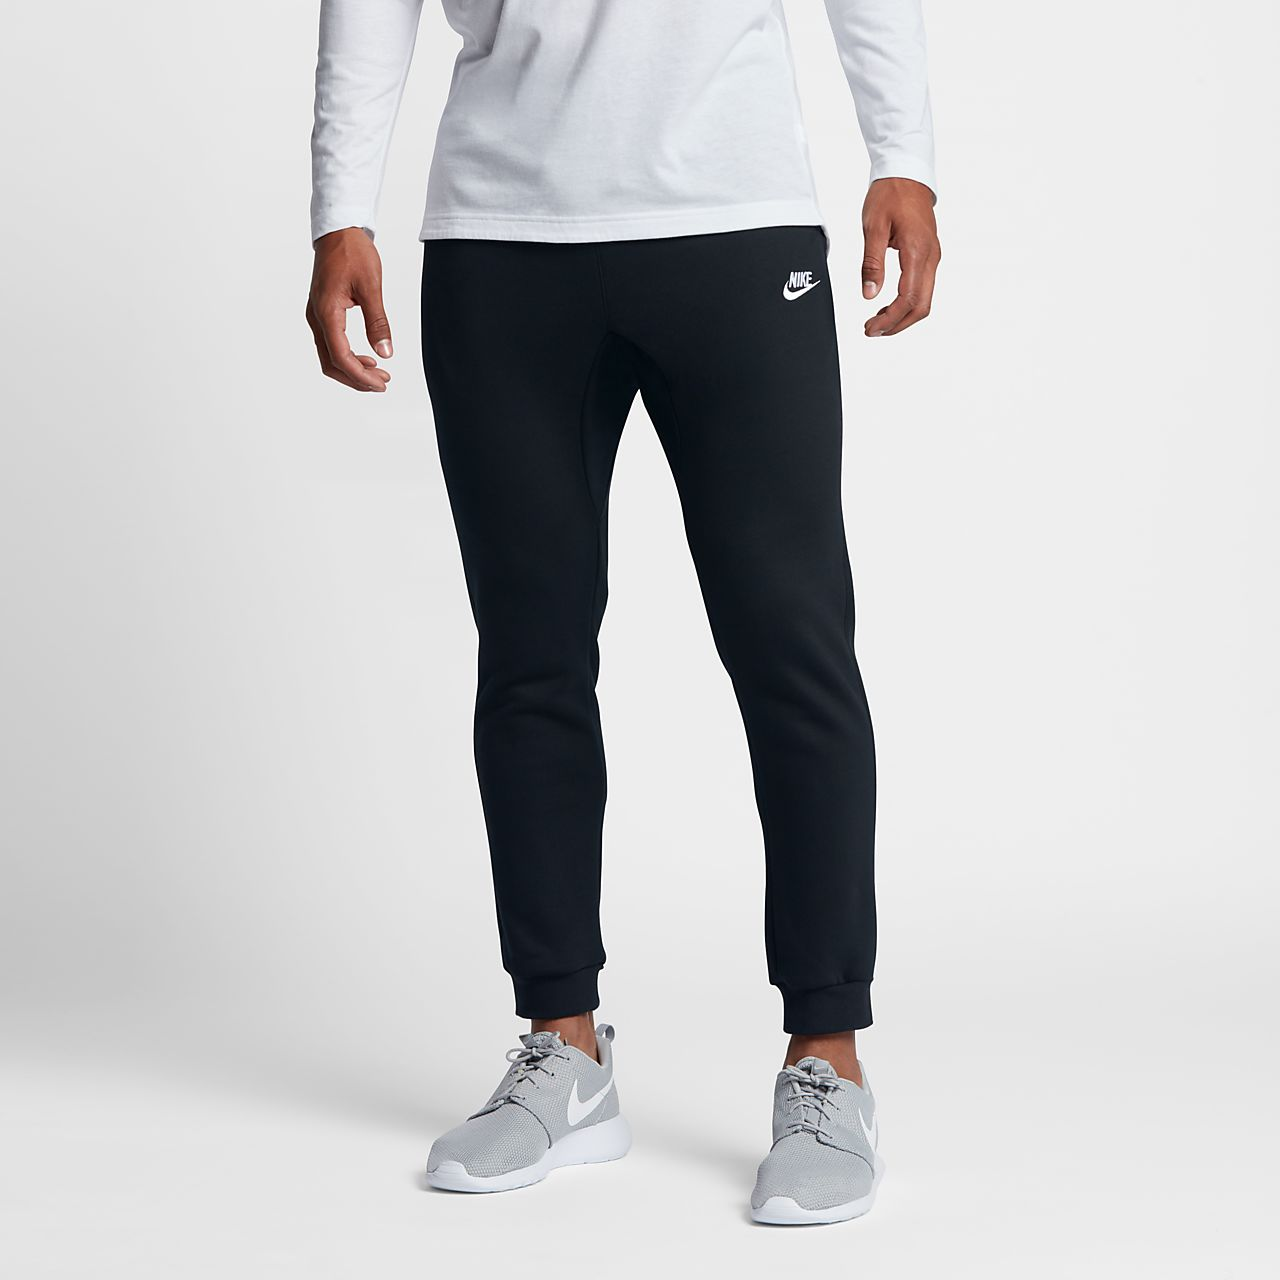 54a51613c5d2 Nike Sportswear Club Fleece Men s Joggers. Nike.com